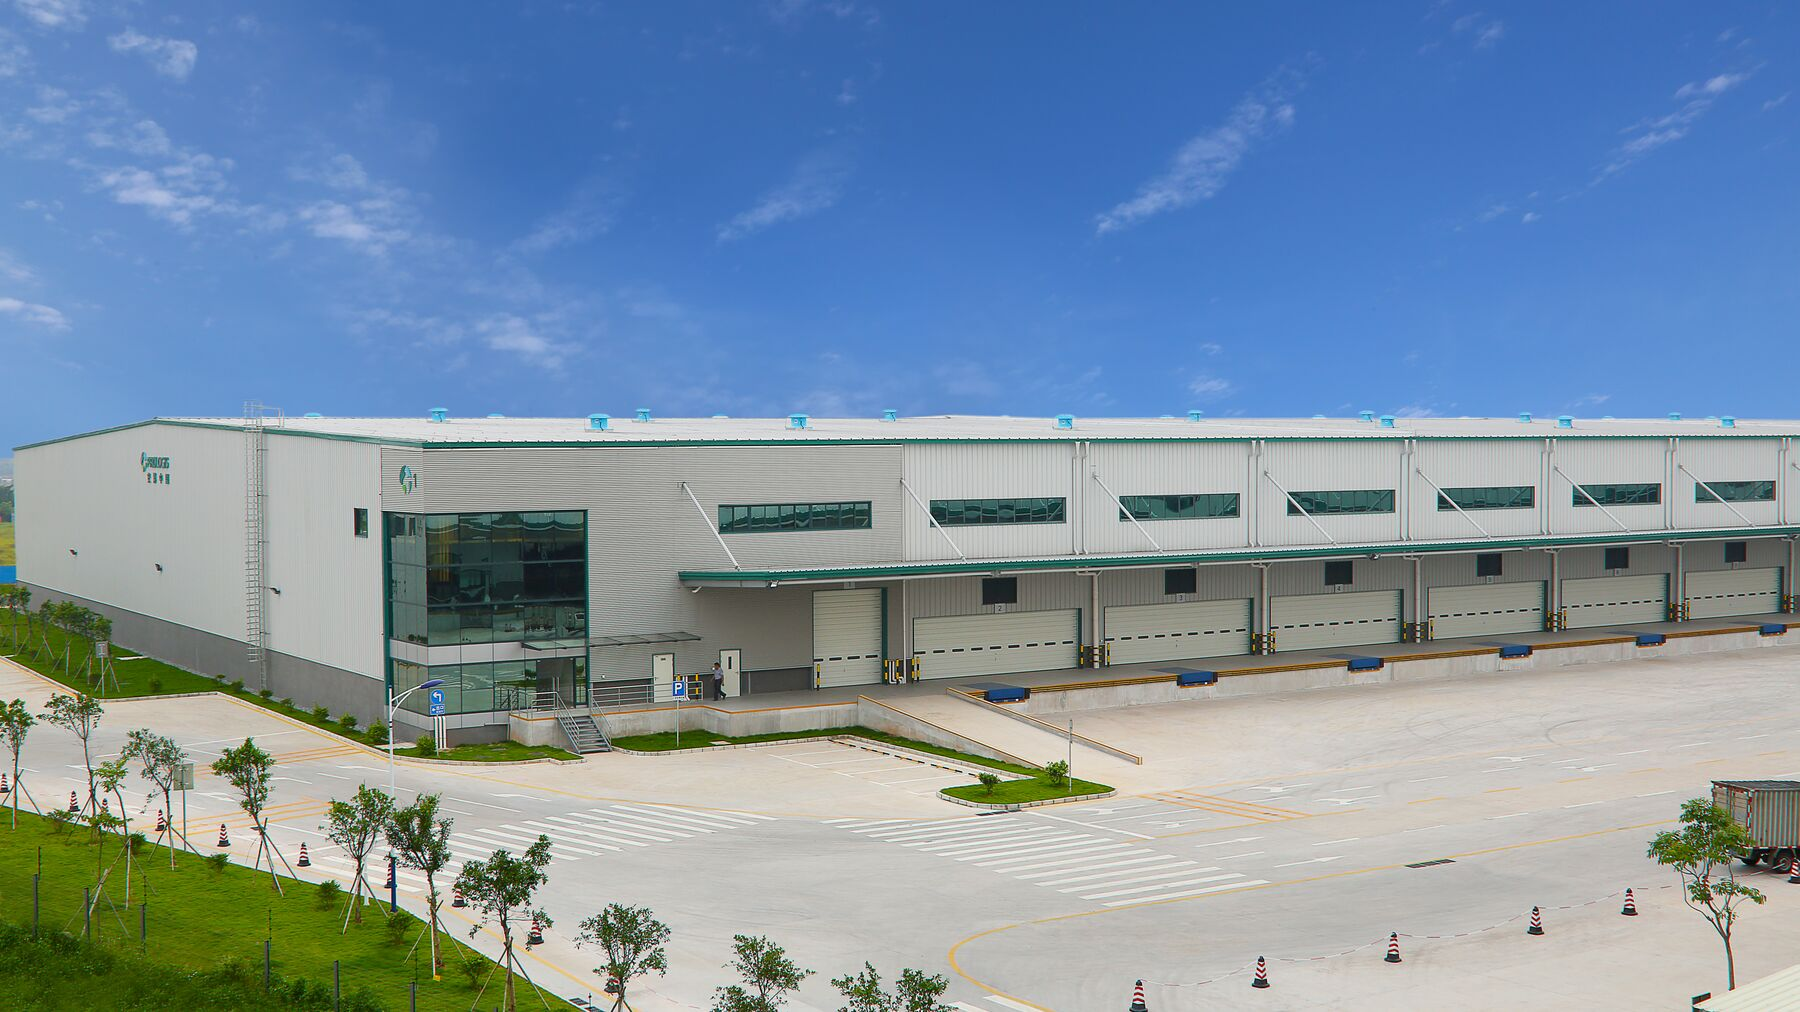 DPM-Dongguan-Shipai-Logistics-Center_10.jpg